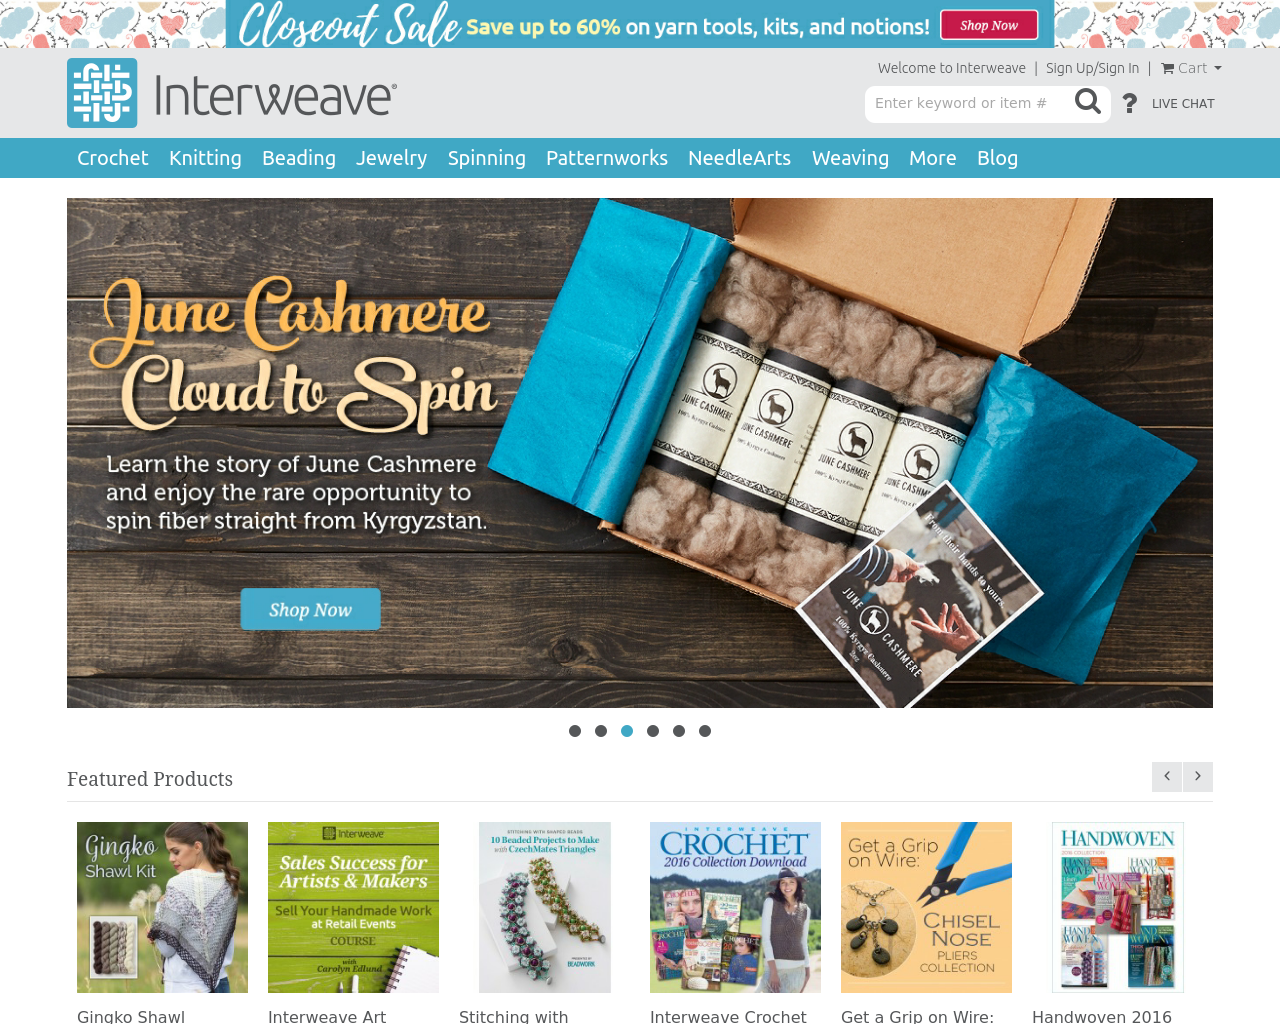 Jewelry-Making-Daily-Advertising-Reviews-Pricing